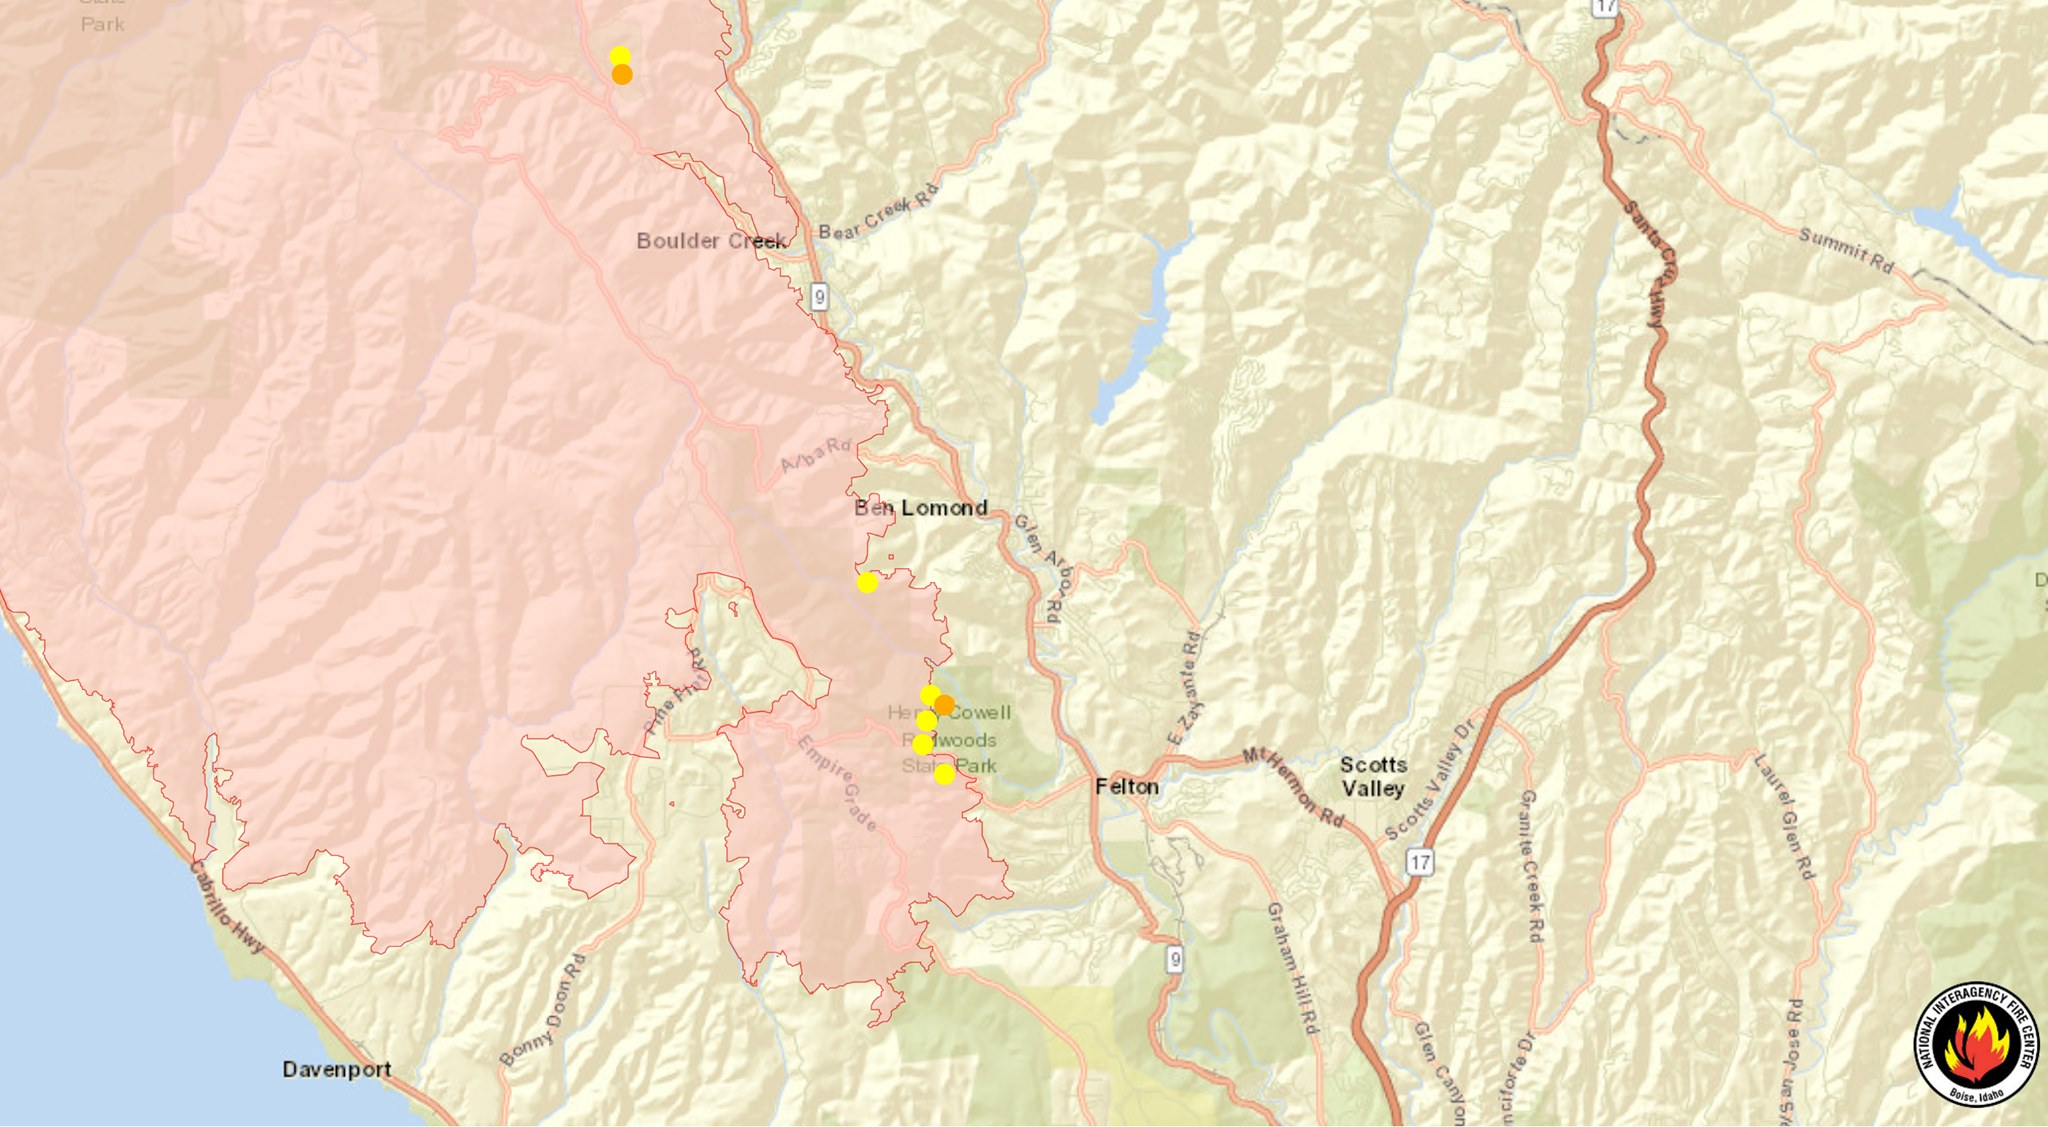 San Lorenzo Valley Fire Map August 27 2020